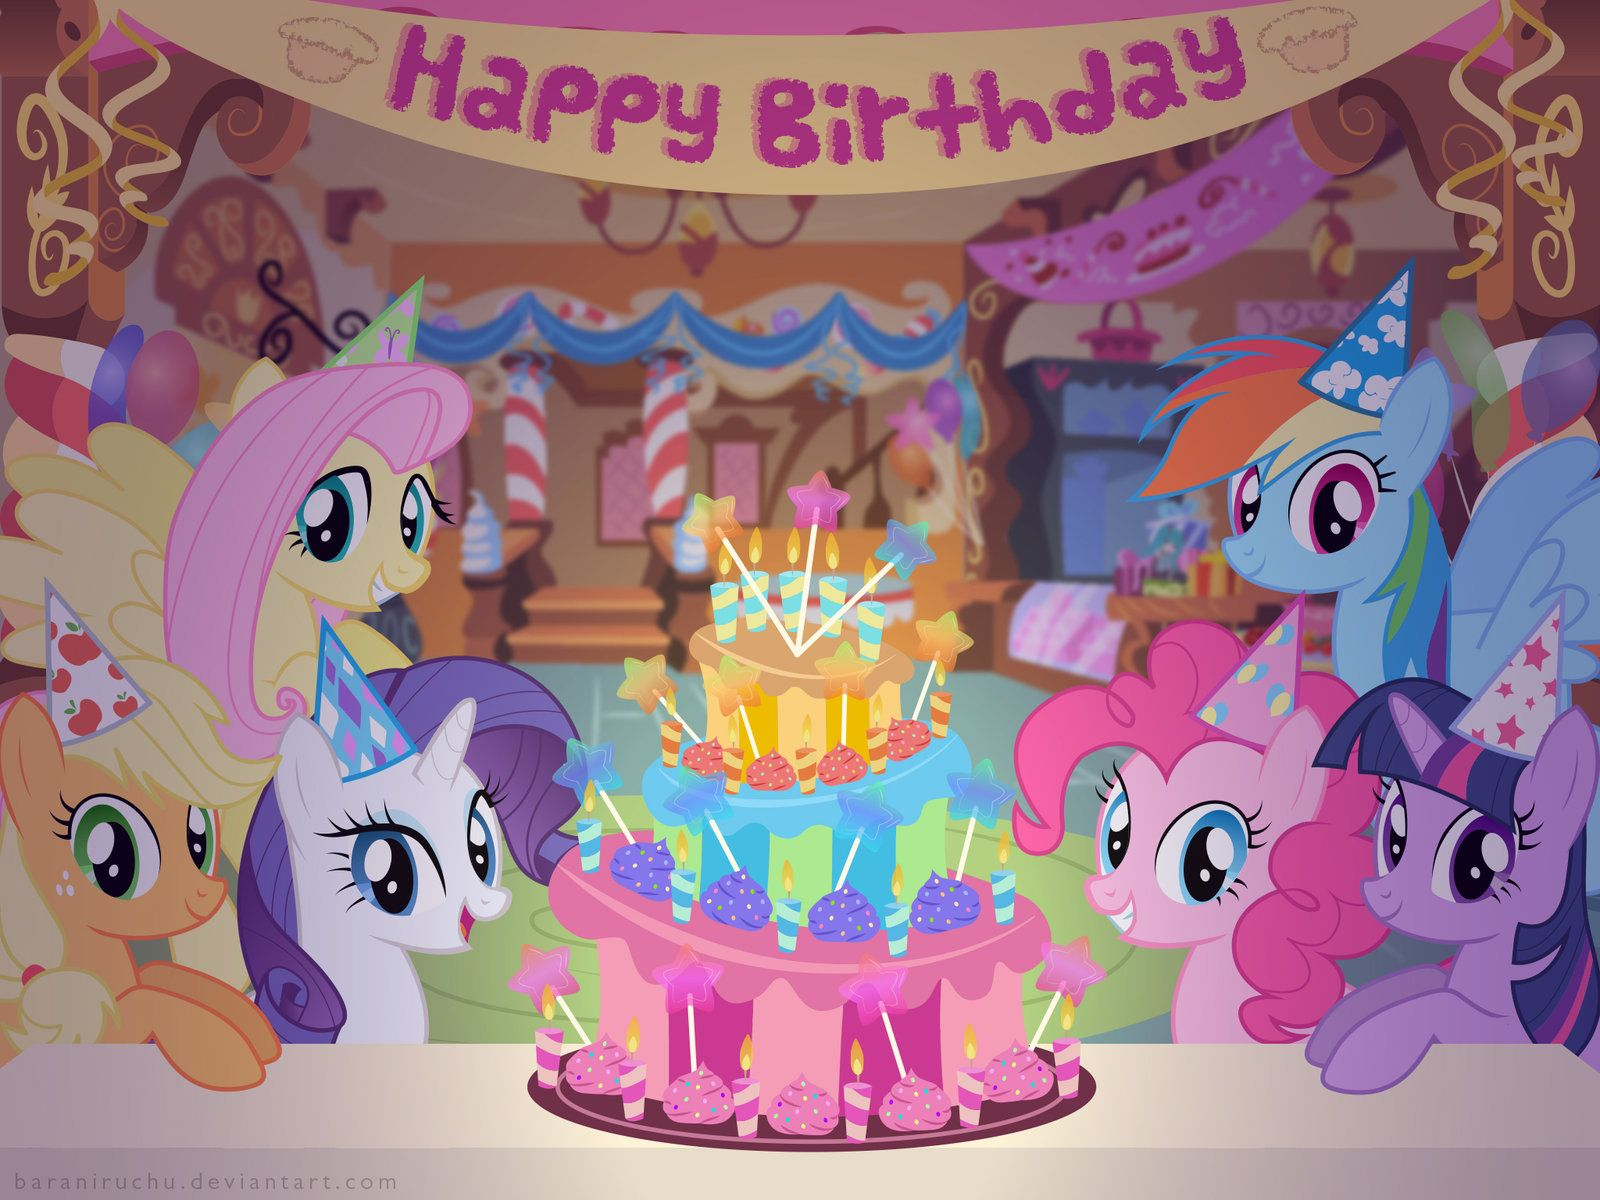 My Little Pony Happy Birthday Coloring Pages : Ii anniversary mlp fim birthday party wallpaper by baraniruchu